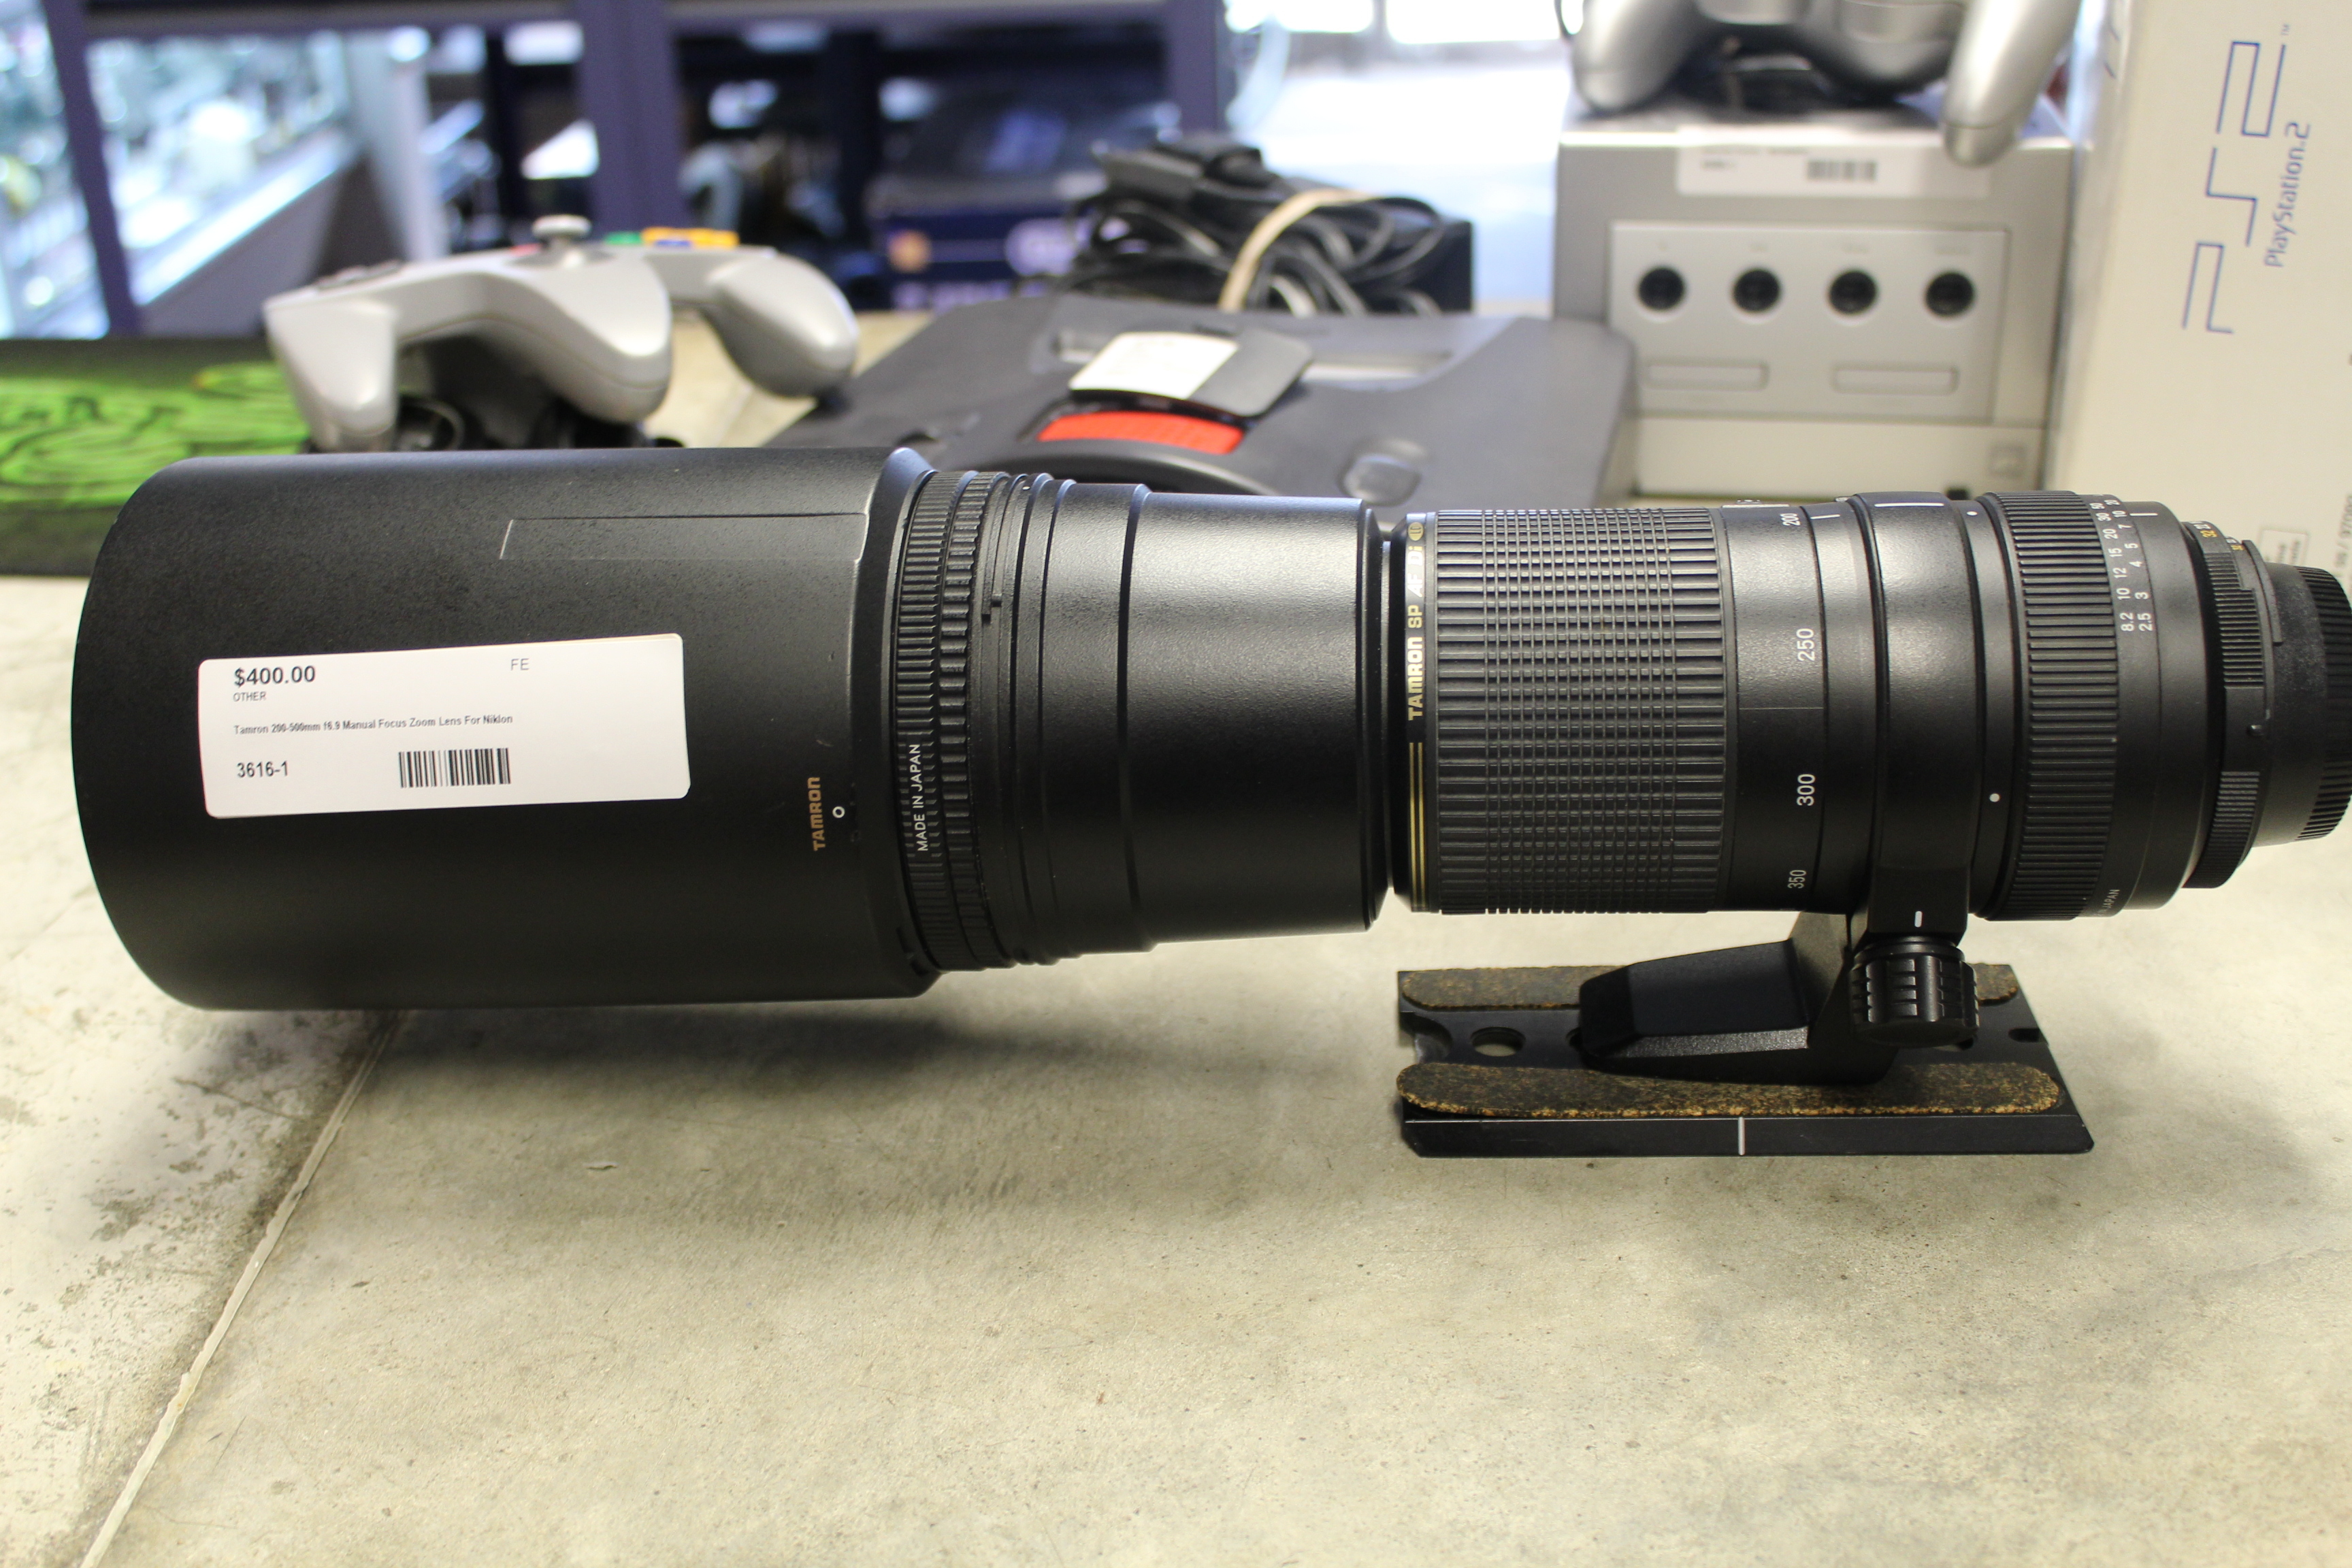 Tamron 200-500mm f6.9 Manual Focus Zoom Lens For Nikon